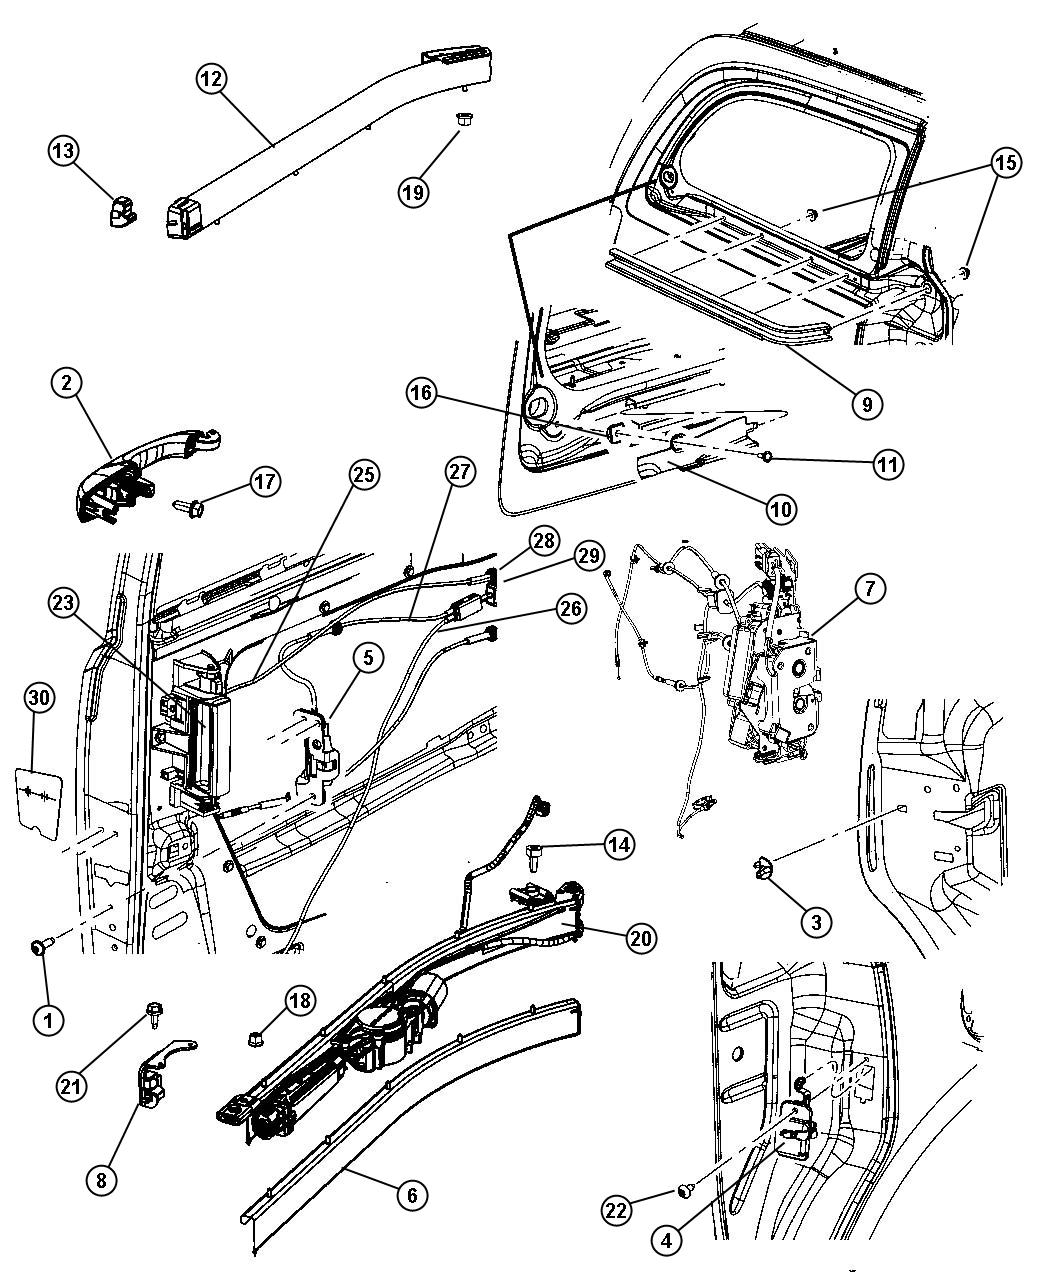 2008 Chrysler Town And Country Sliding Door Parts Diagram Wiring 2010 3 8 Engine Hardware Components 2005 Fuse